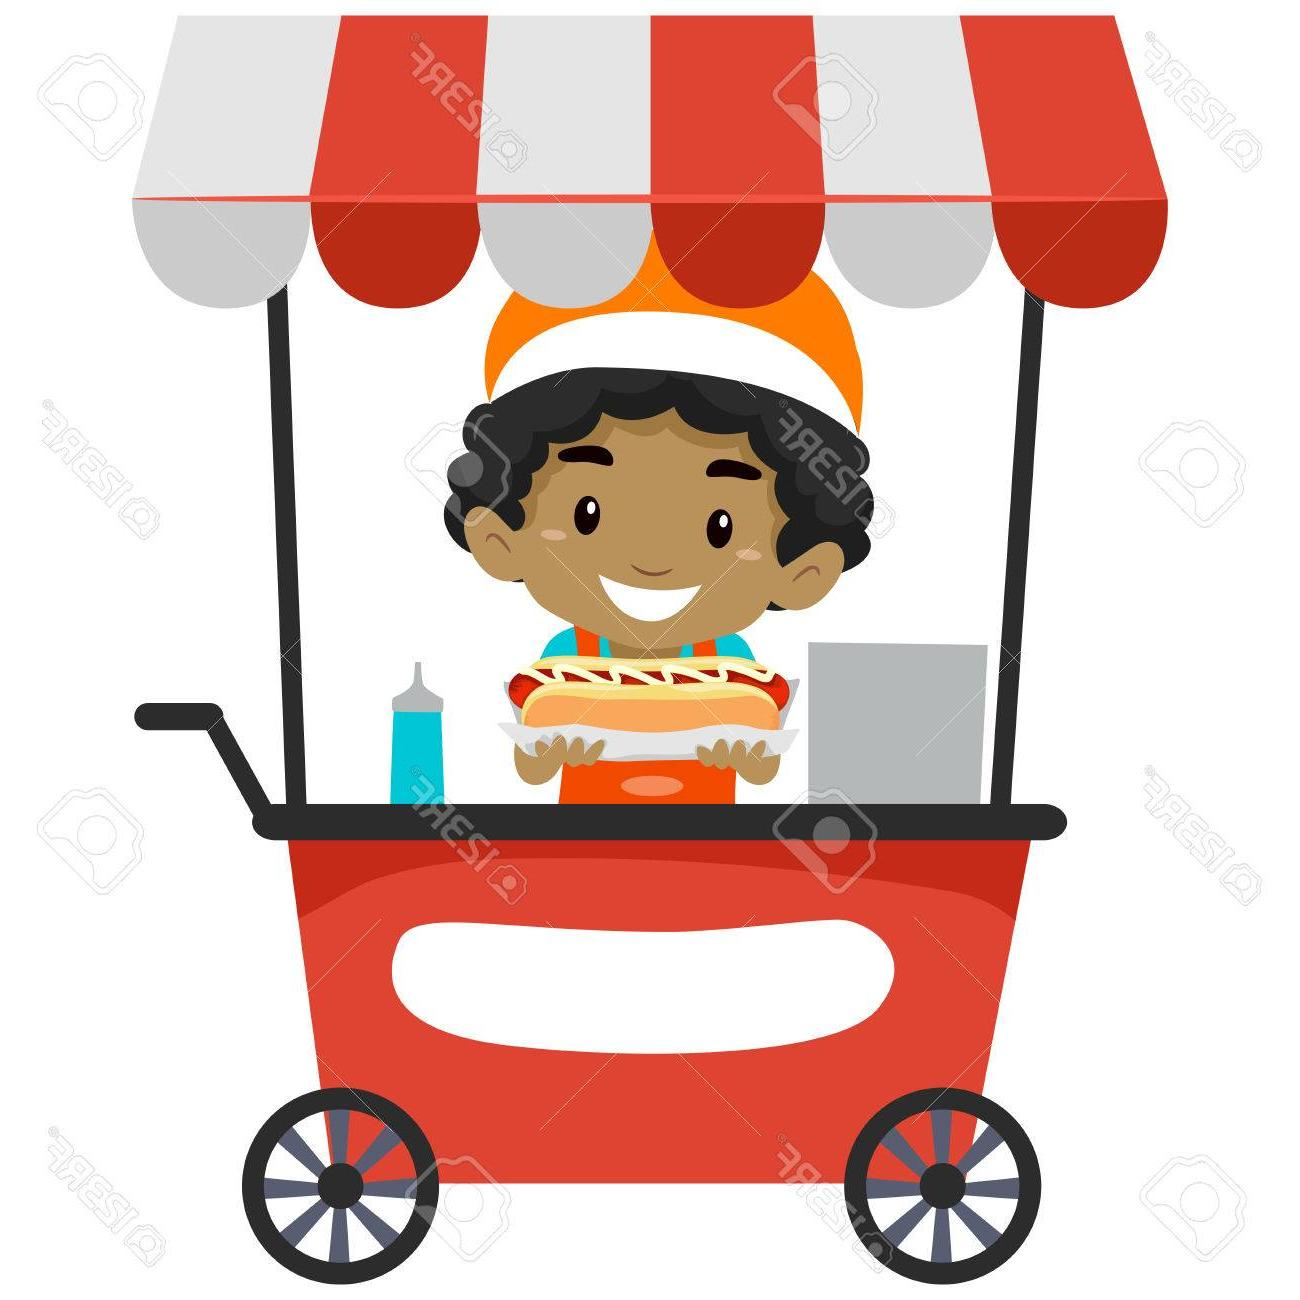 1300x1300 Best Free Vector Illustration Of Vendor Boy Selling Hotdog On Food